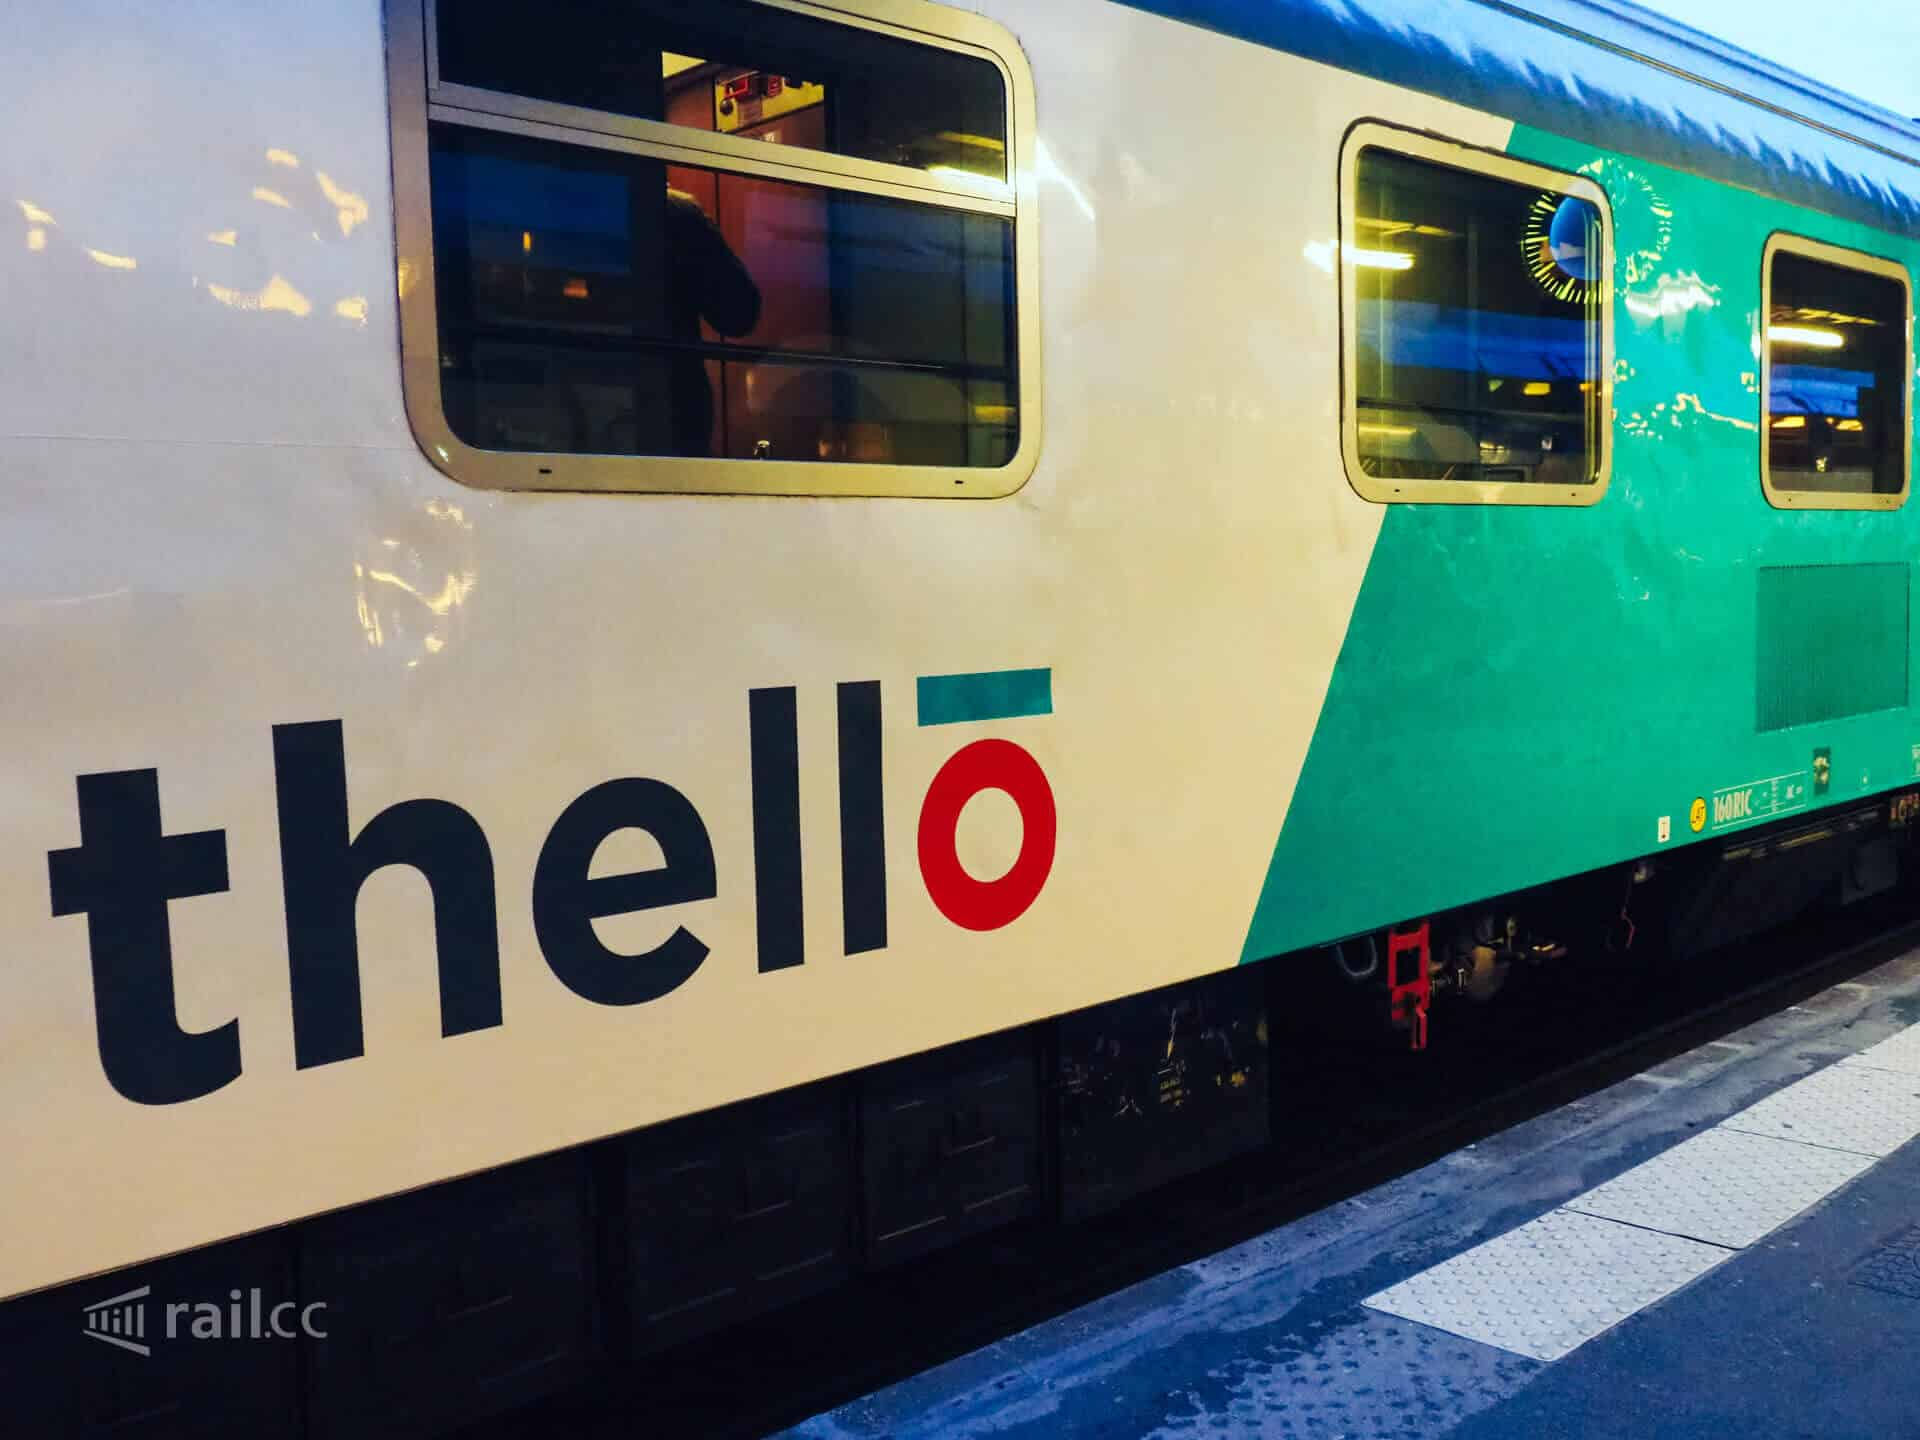 Thello form Venice to Paris - the direct overnight train.